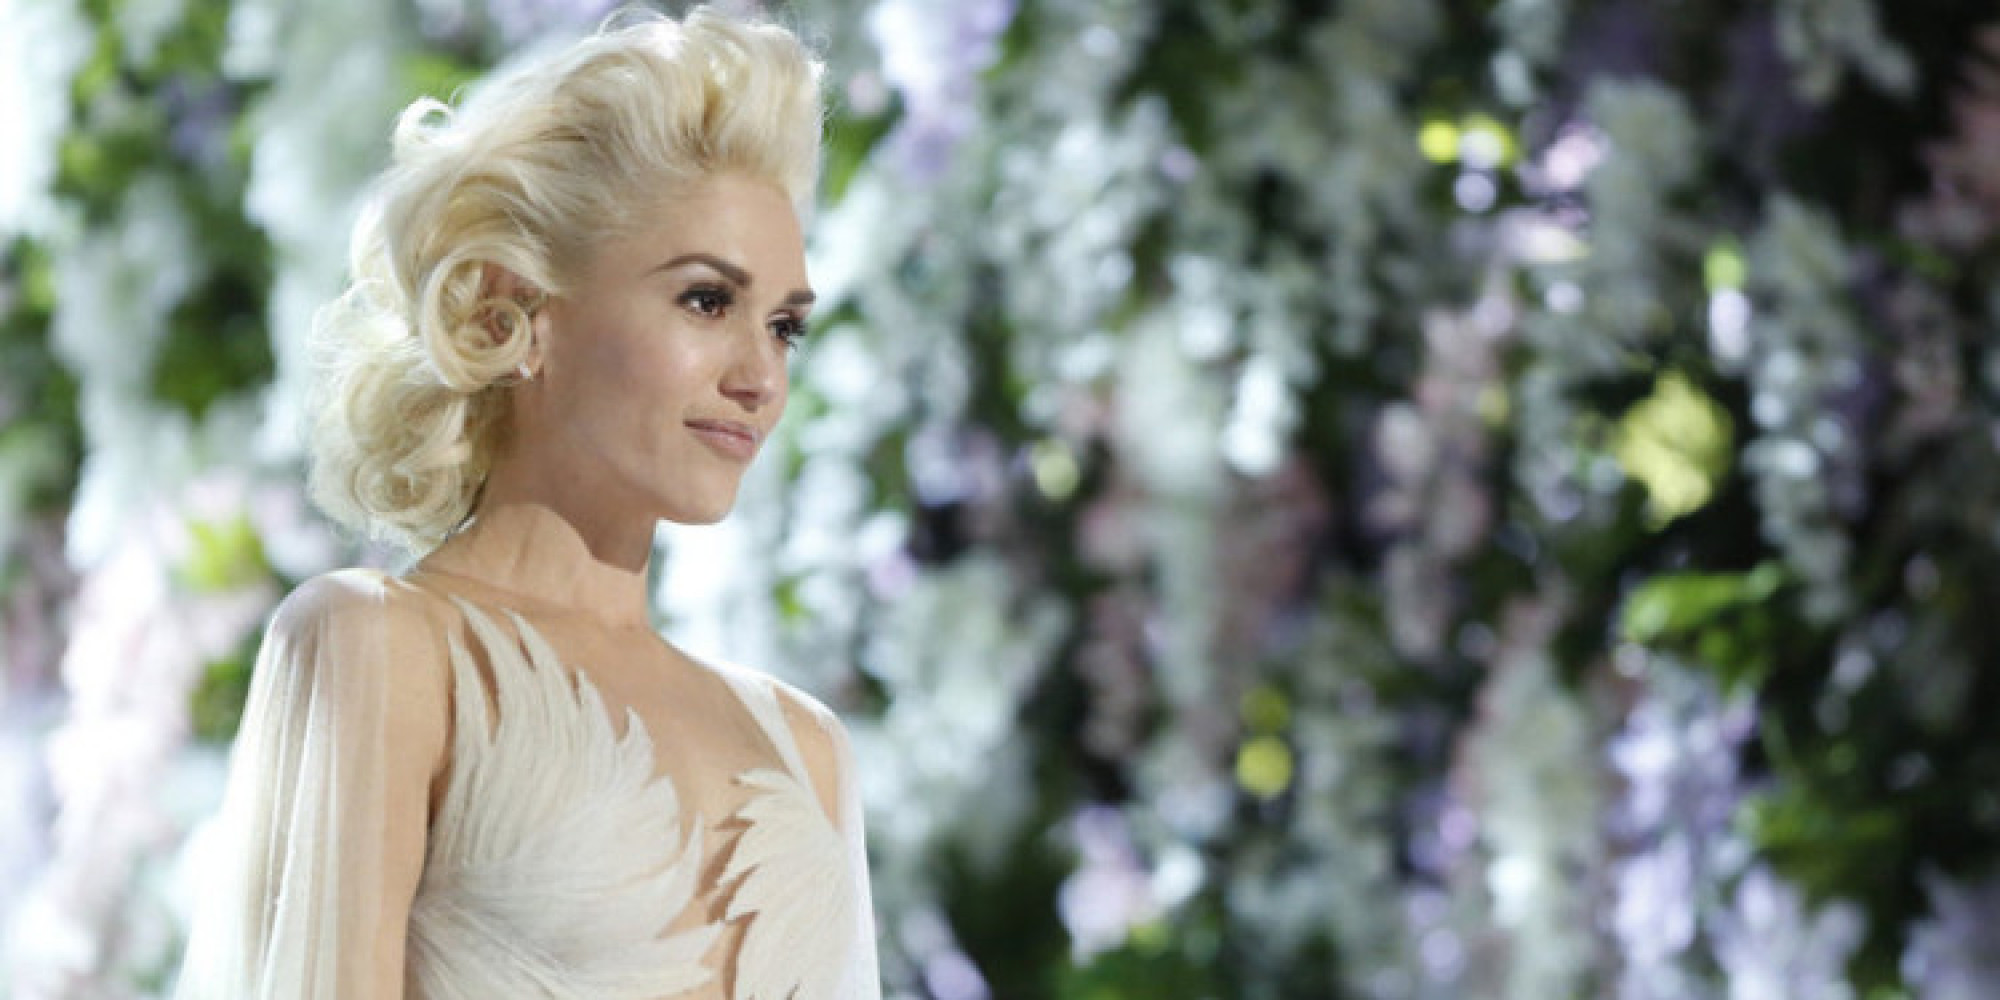 Gwen Stefani Wears Wedding Dress For Emotional 'Used To Love You ... Gwen Stefani